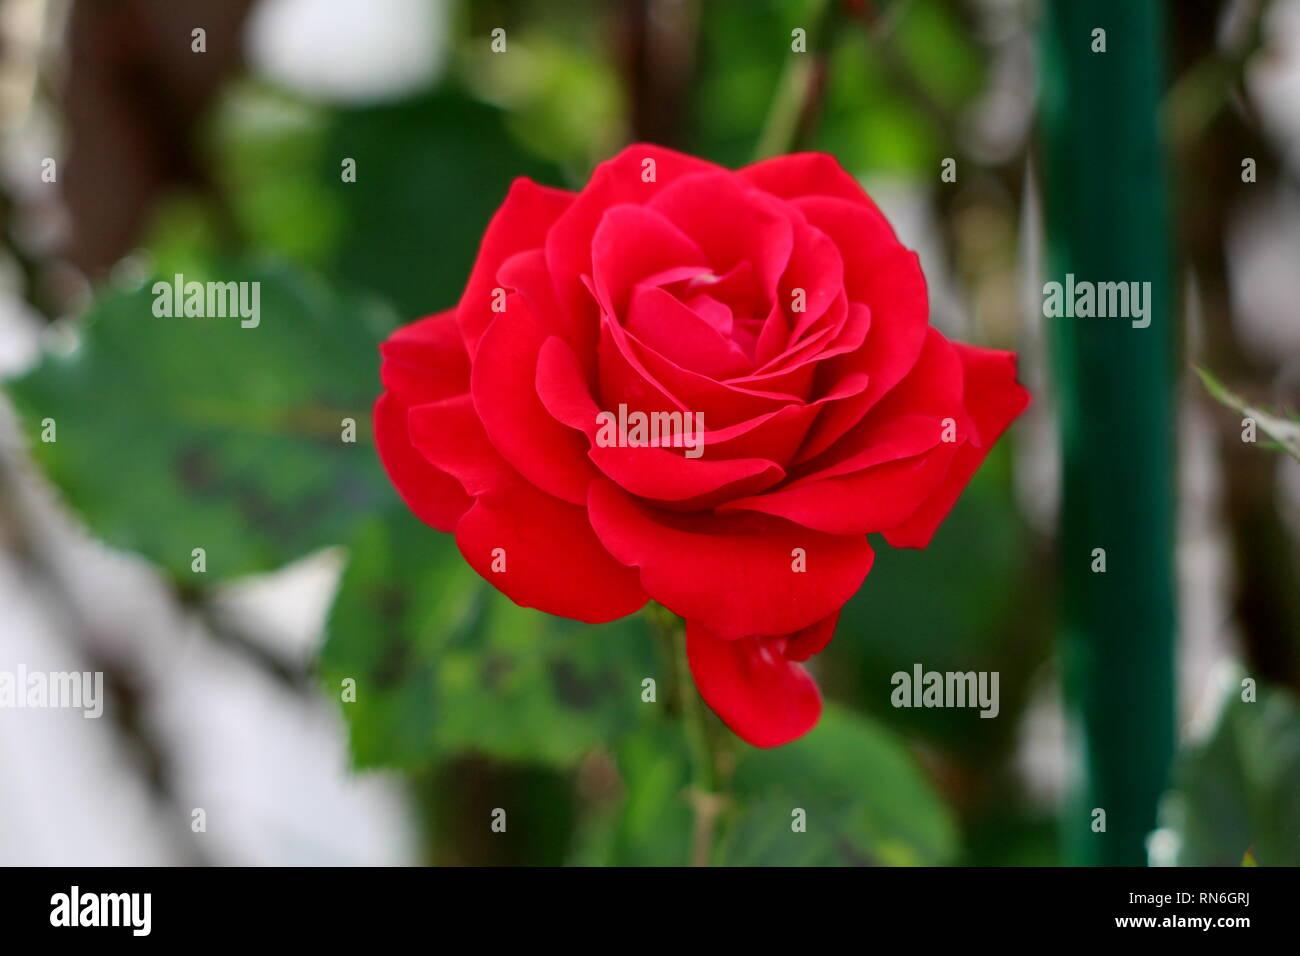 Blood red rose with beautiful multi layered thick petals fully open and blooming in local garden surrounded with dark green leaves on warm summer day - Stock Image